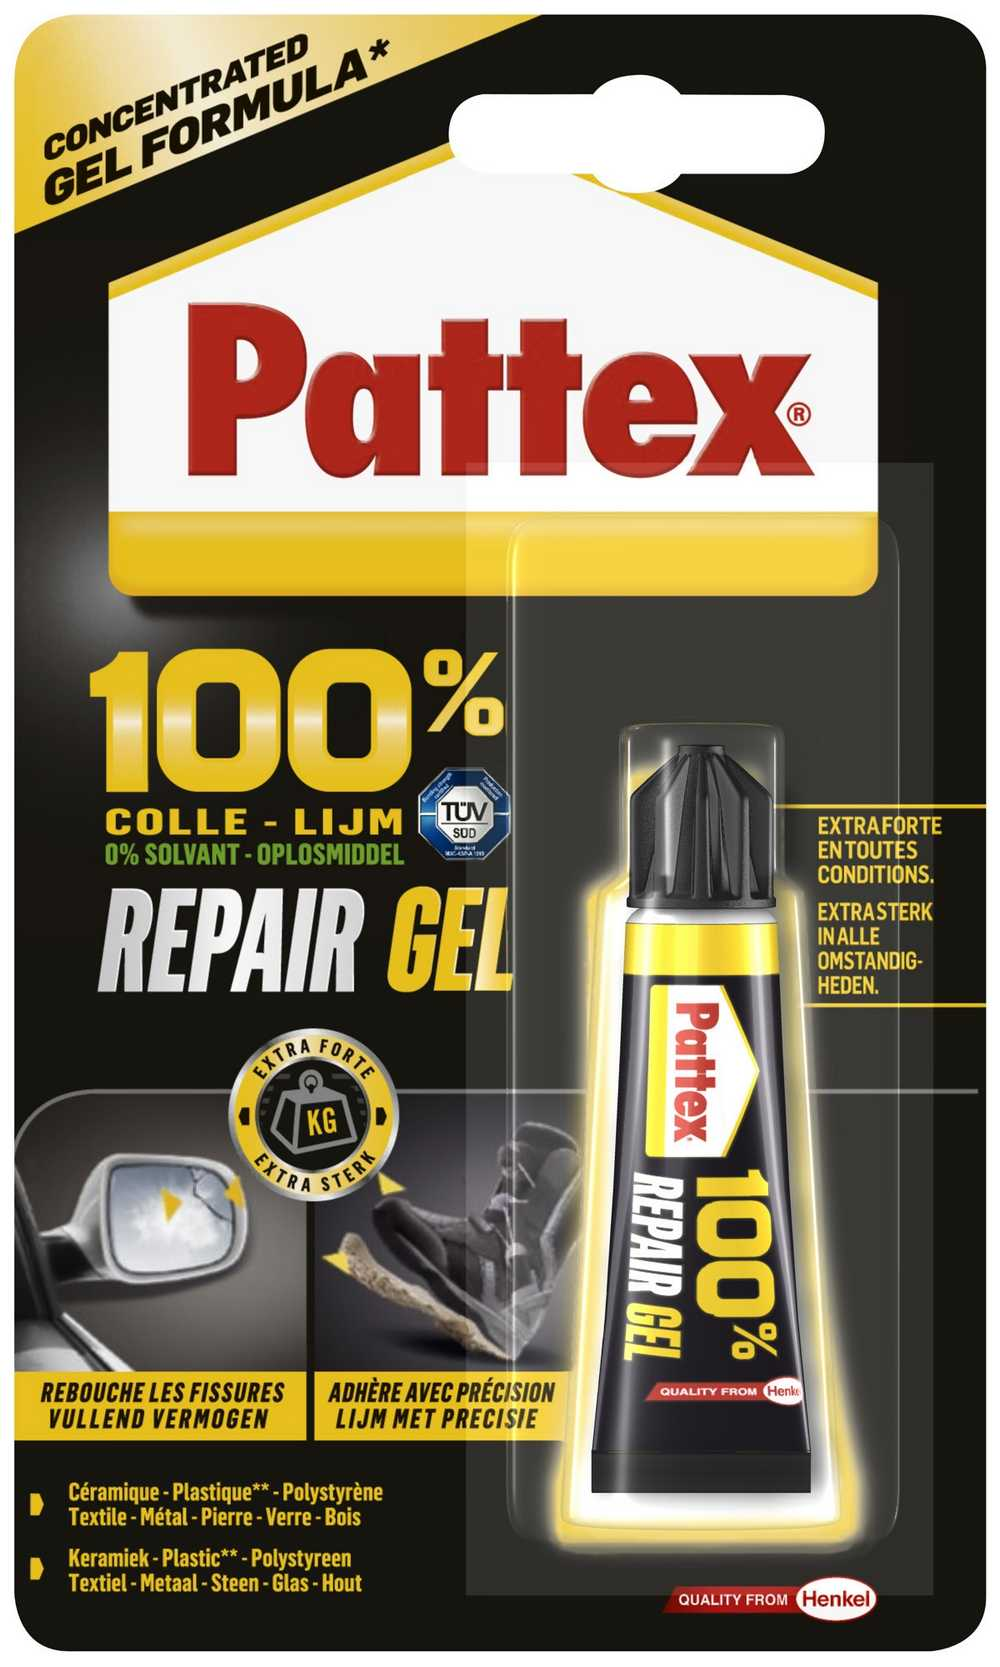 PATTEX 100% REPAIR GEL 8G  PATTEX 100% REPAIR GEL 8G